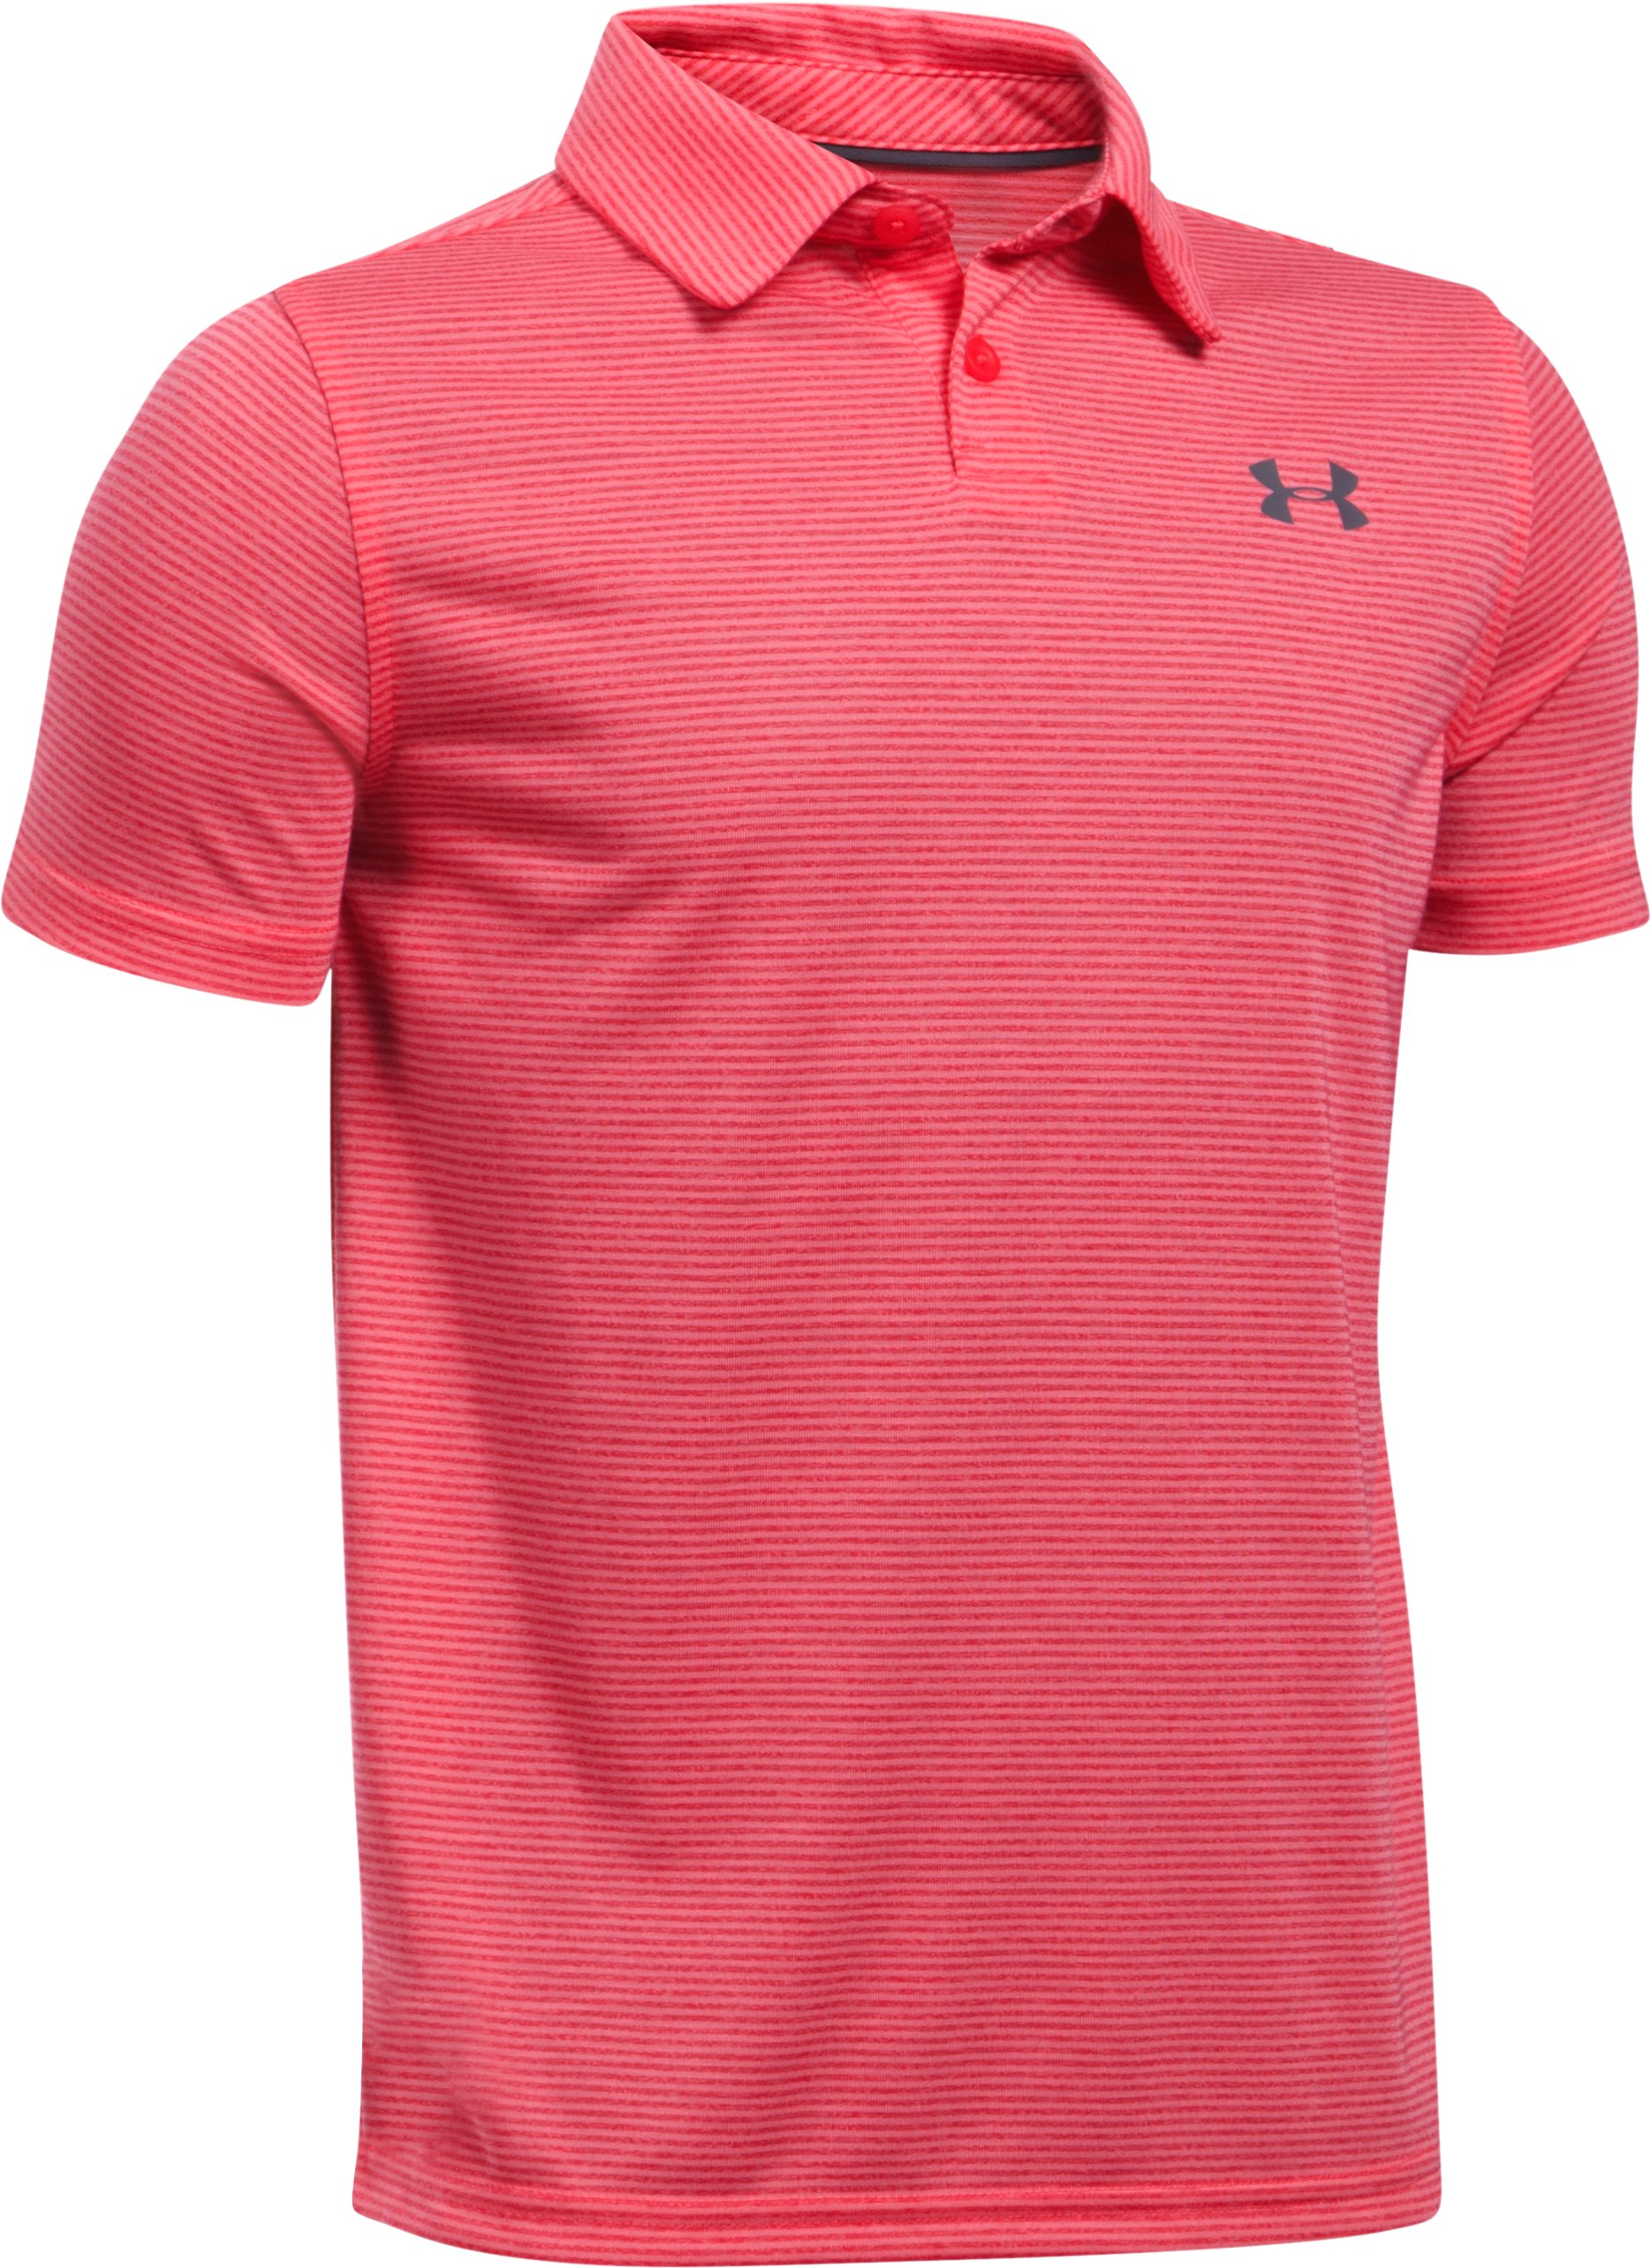 Boys' UA Threadborne™ Feeder Polo, Hollywood